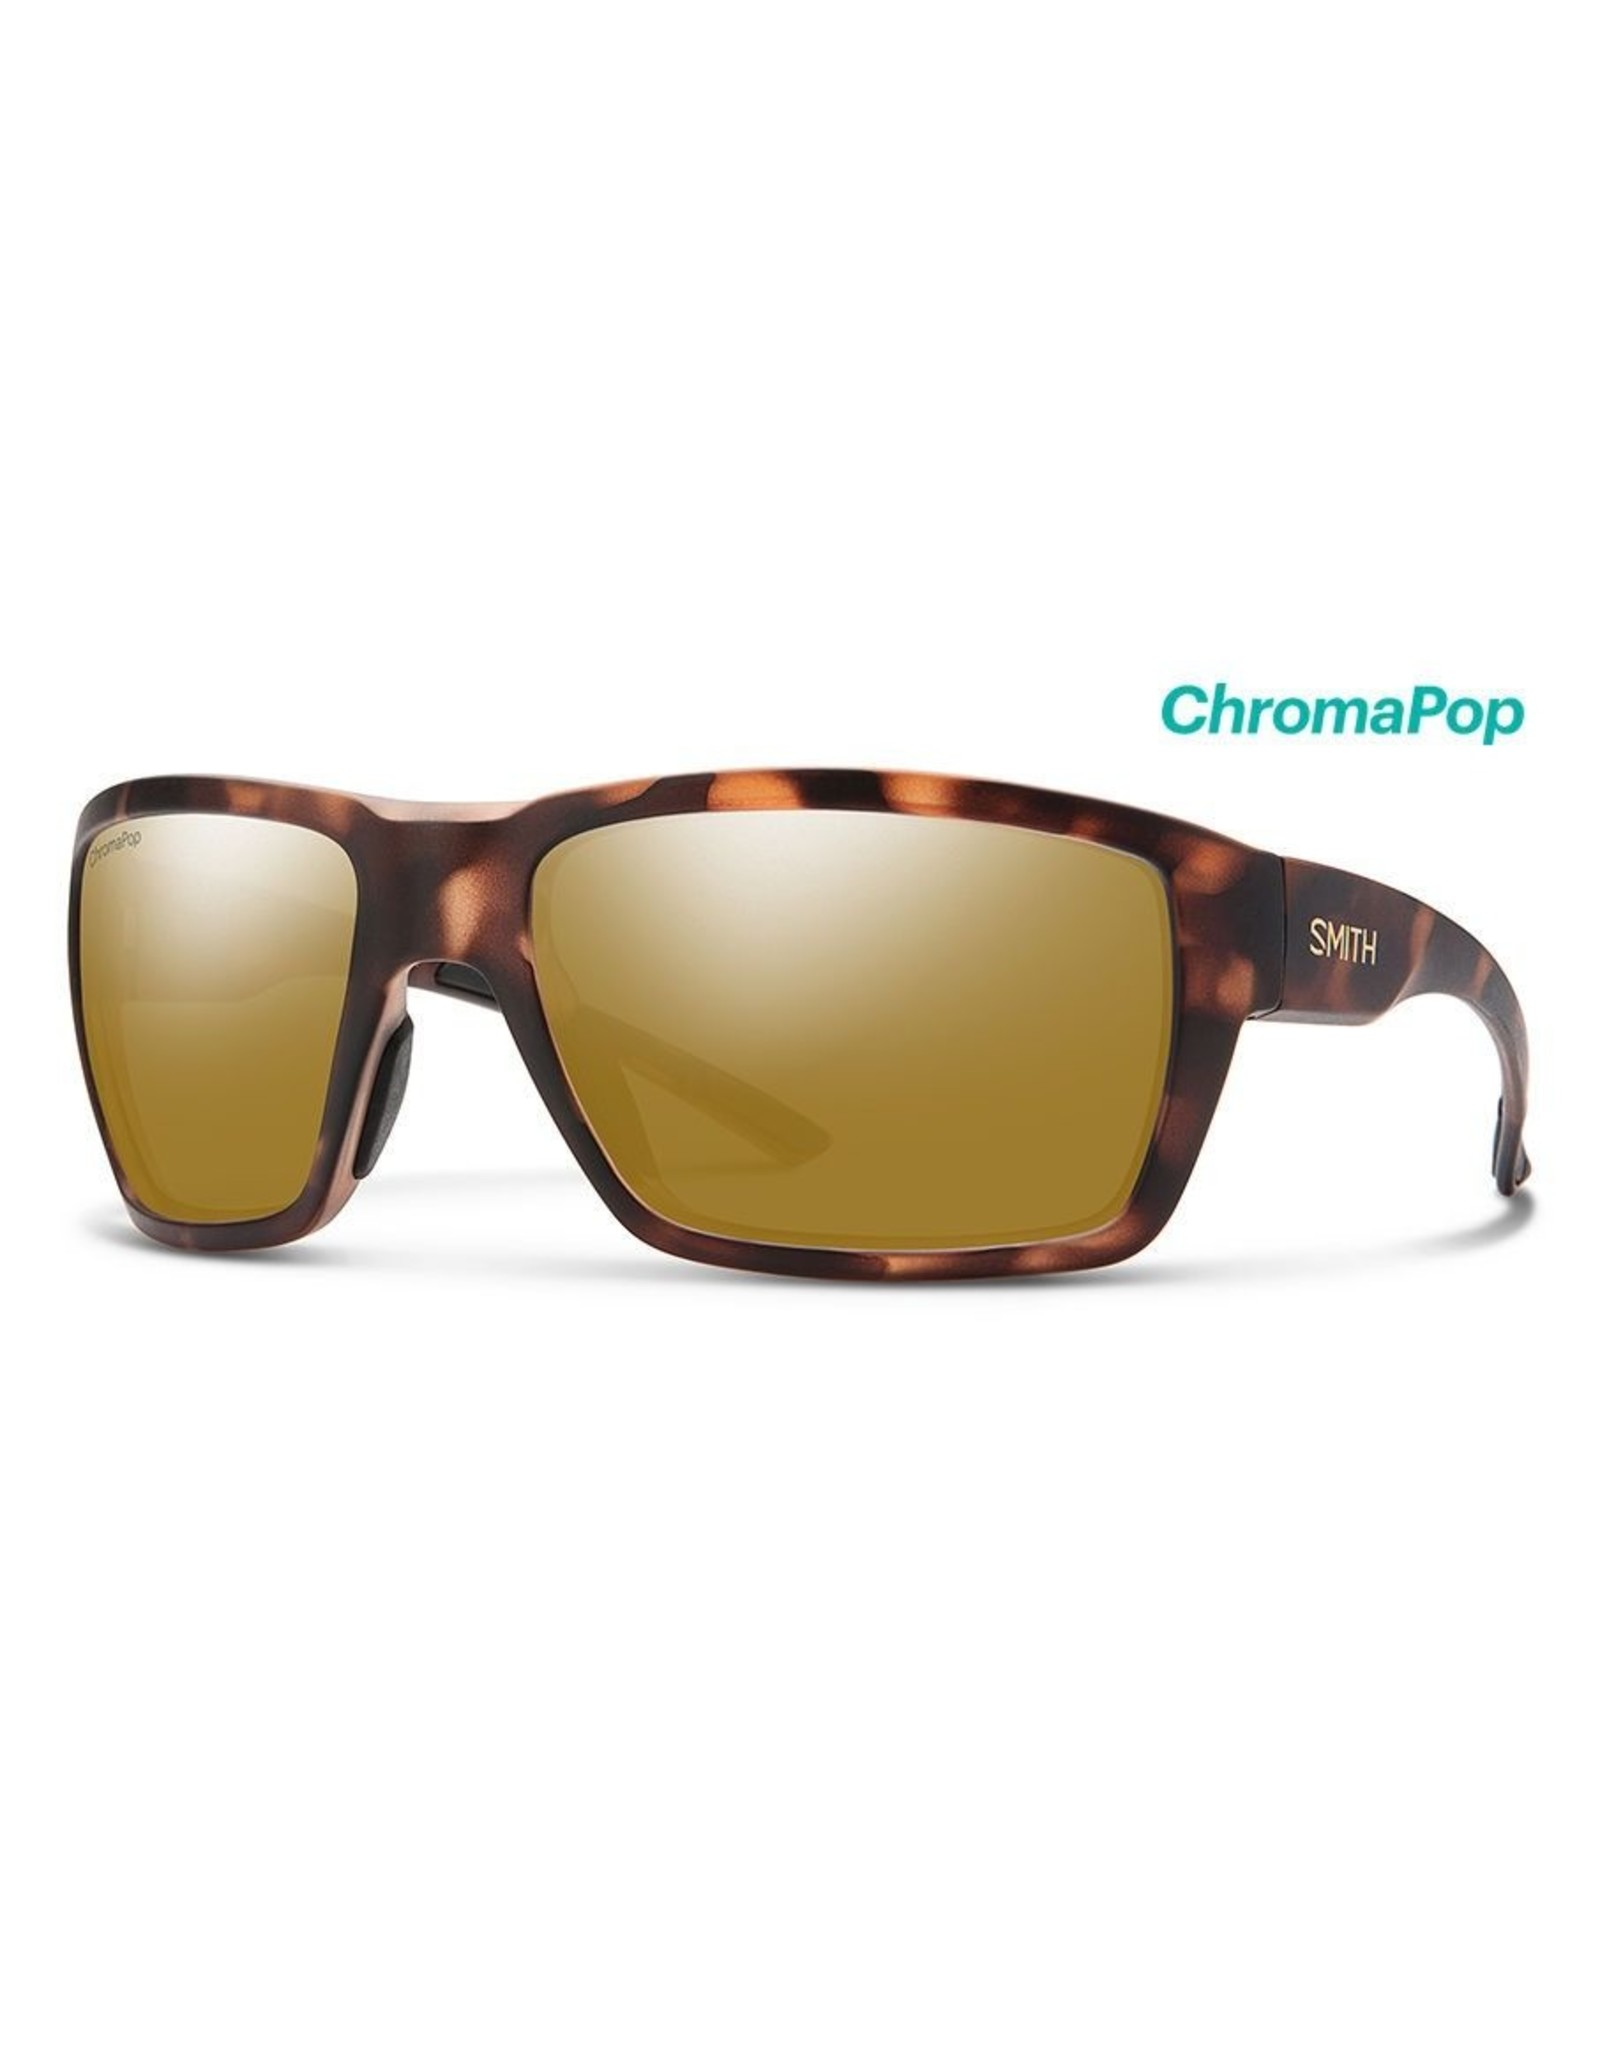 Smith SMITH Highwater (ChromaPop PLUS Bronze Mirror) Matte Tortoise Frame